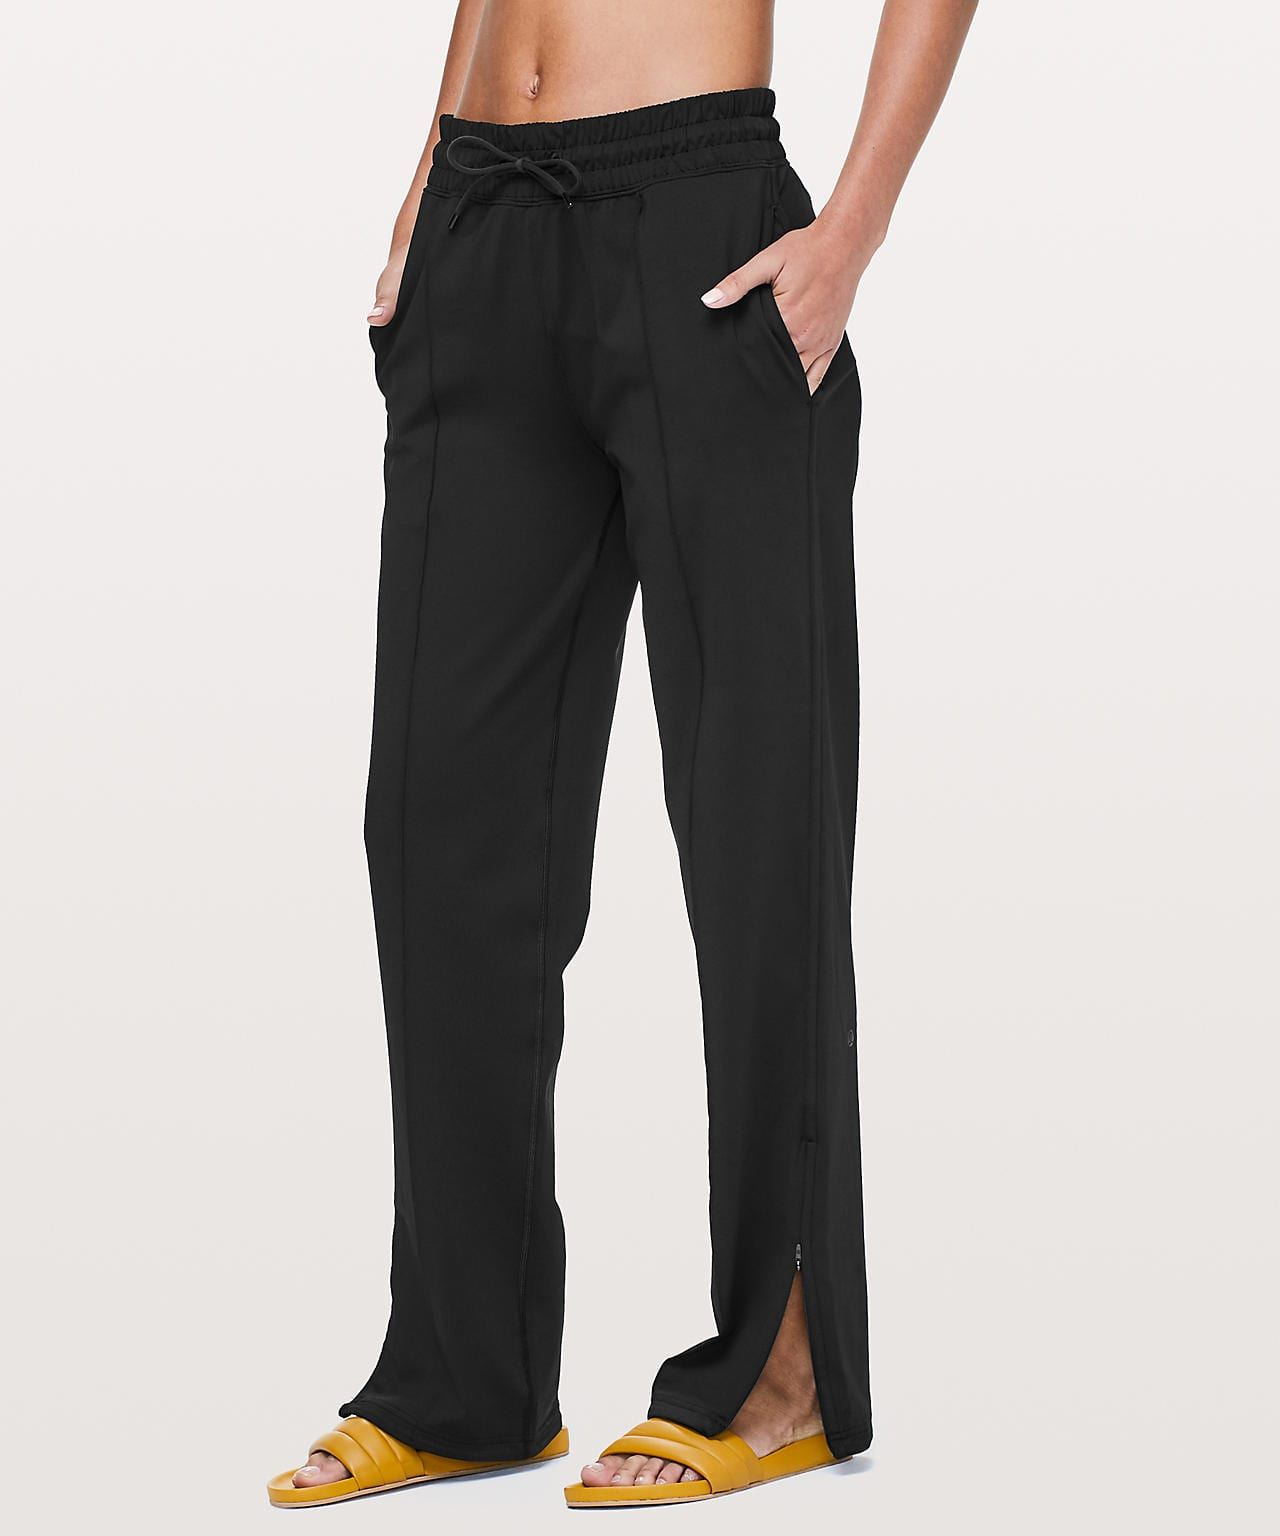 90's style track pant from lululemon.